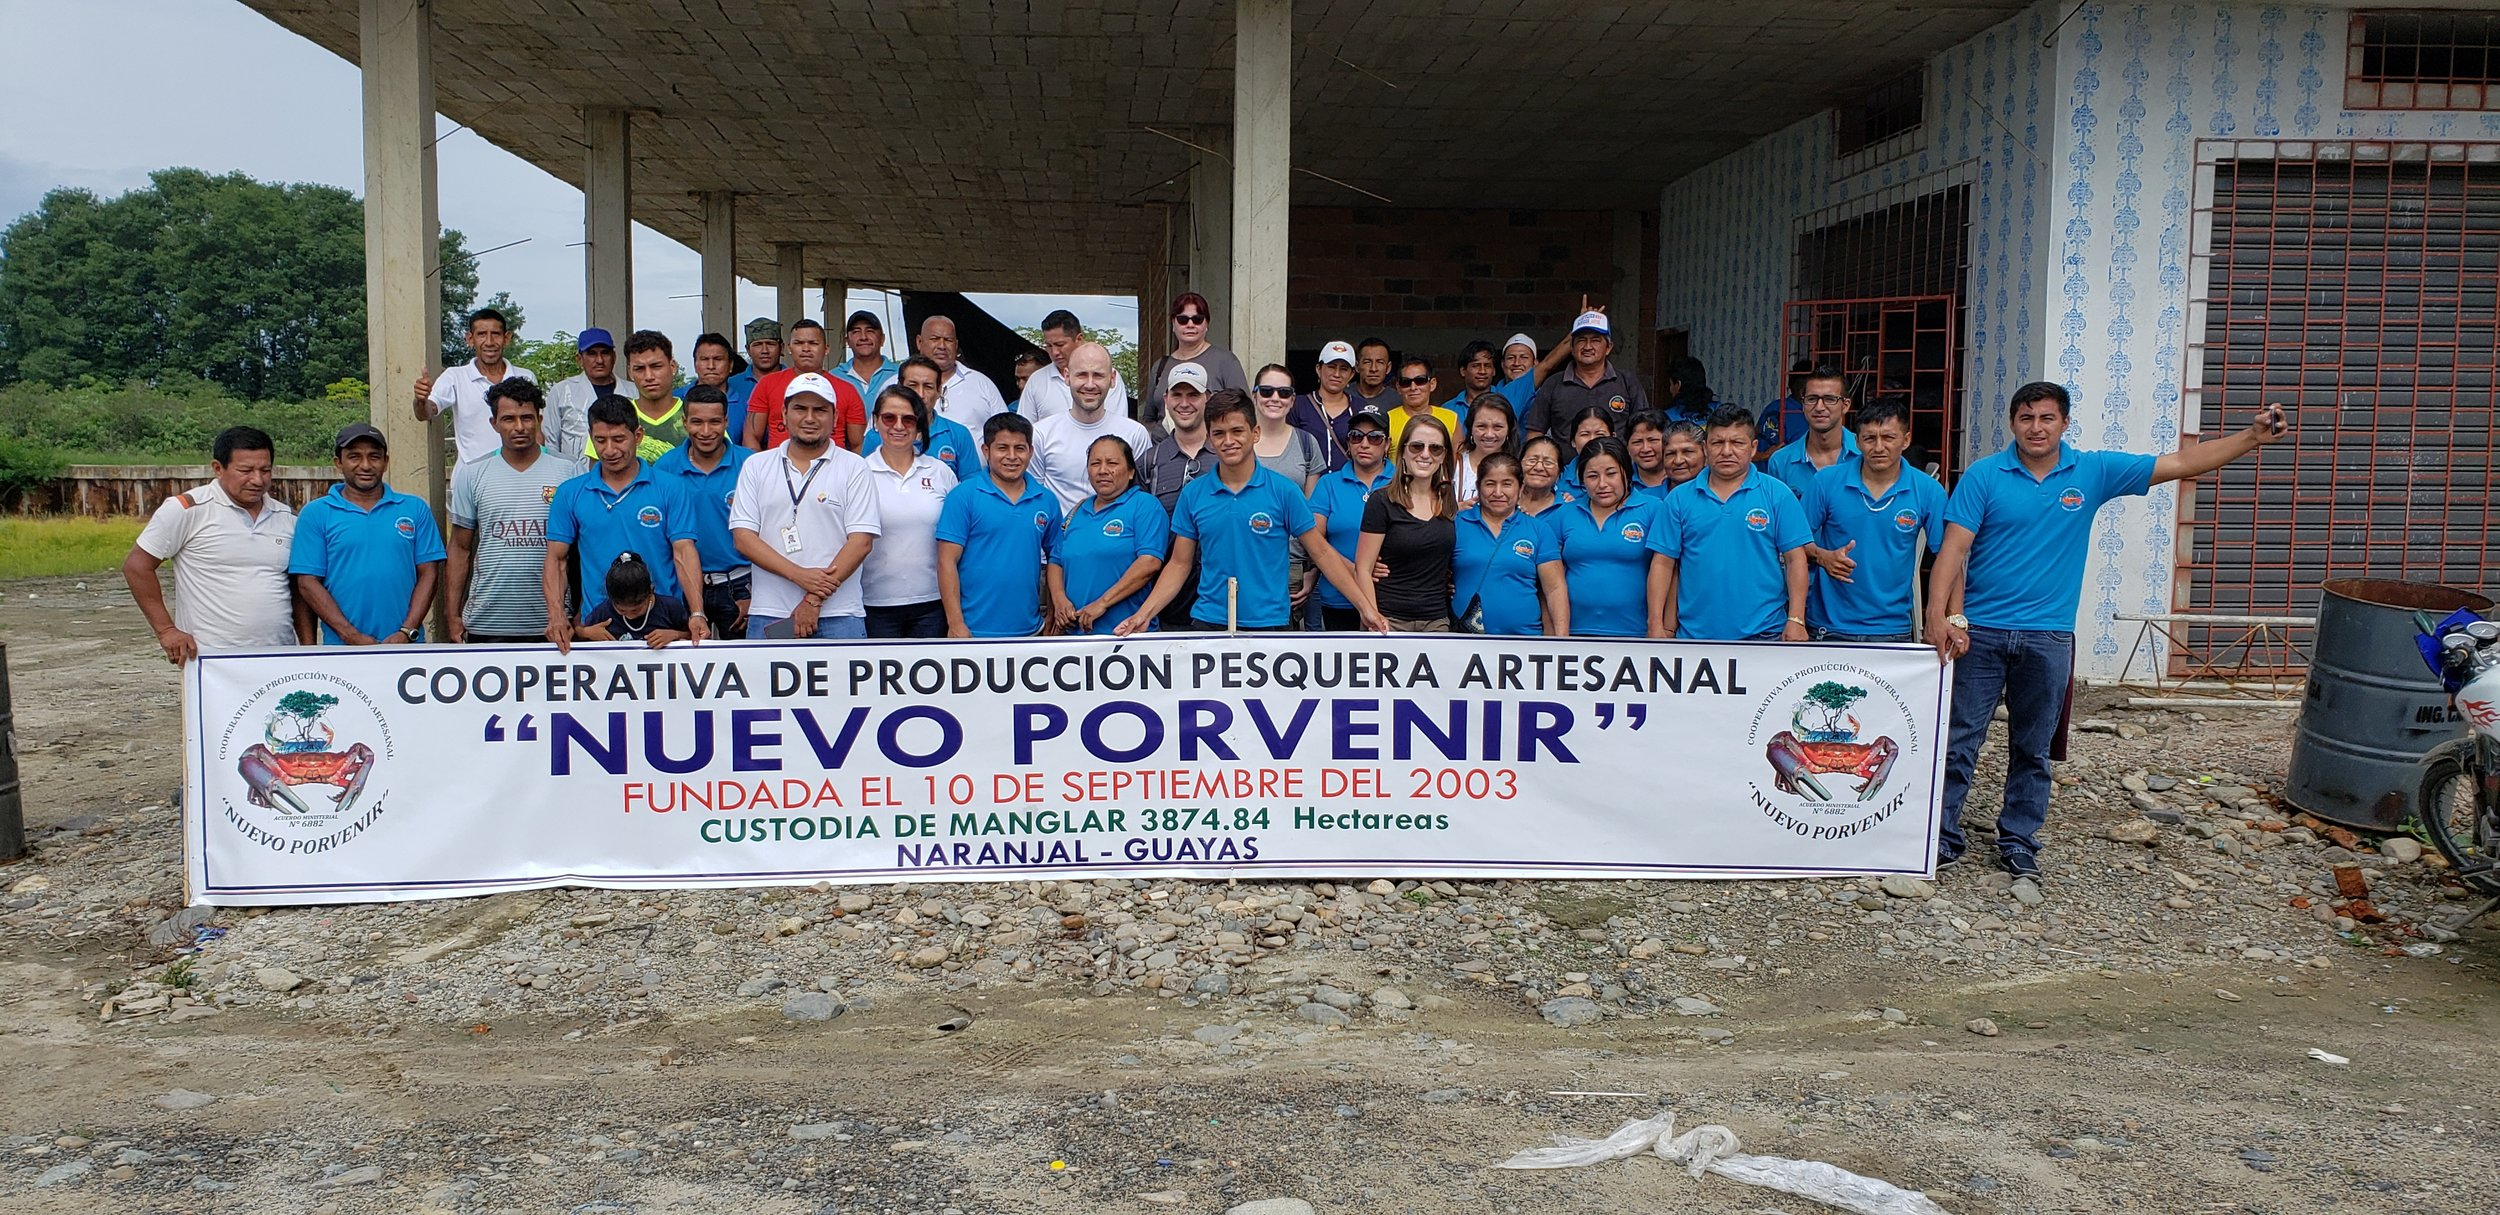 The Nuevo Porvenir Association is part of Ecuador's mangrove concession program, Socio Manglar, which grants the community exclusive rights to use nearby mangrove areas for fishing, tourism or other livelihood needs.